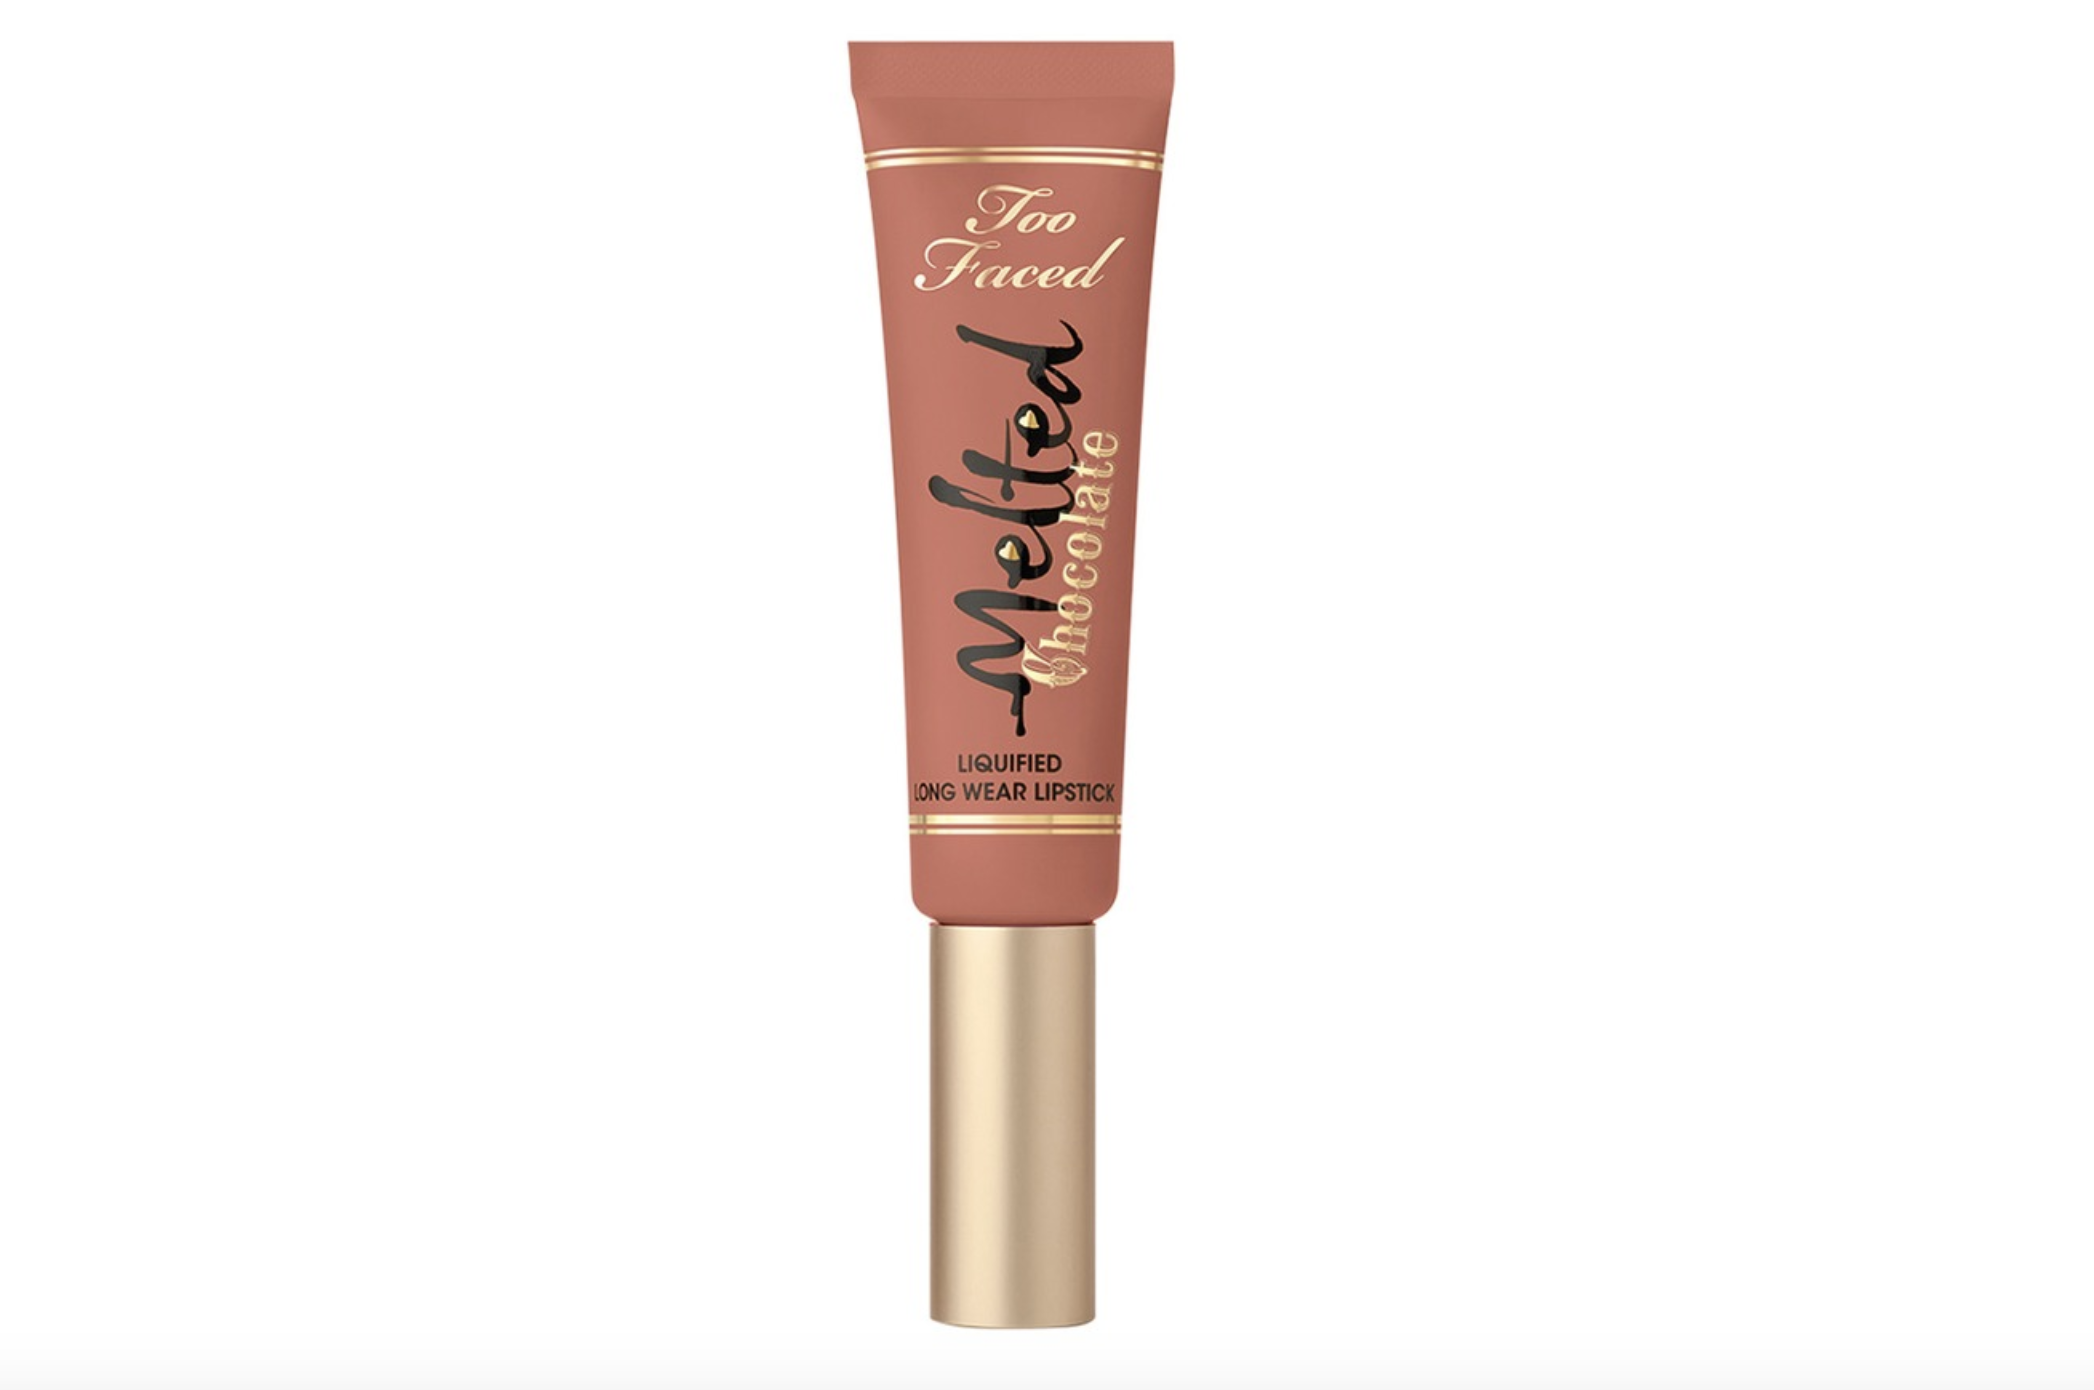 Kode Promo Sephora Diskon 20% Too Faced Chocolate Lip Liquified Metallic Lipstick